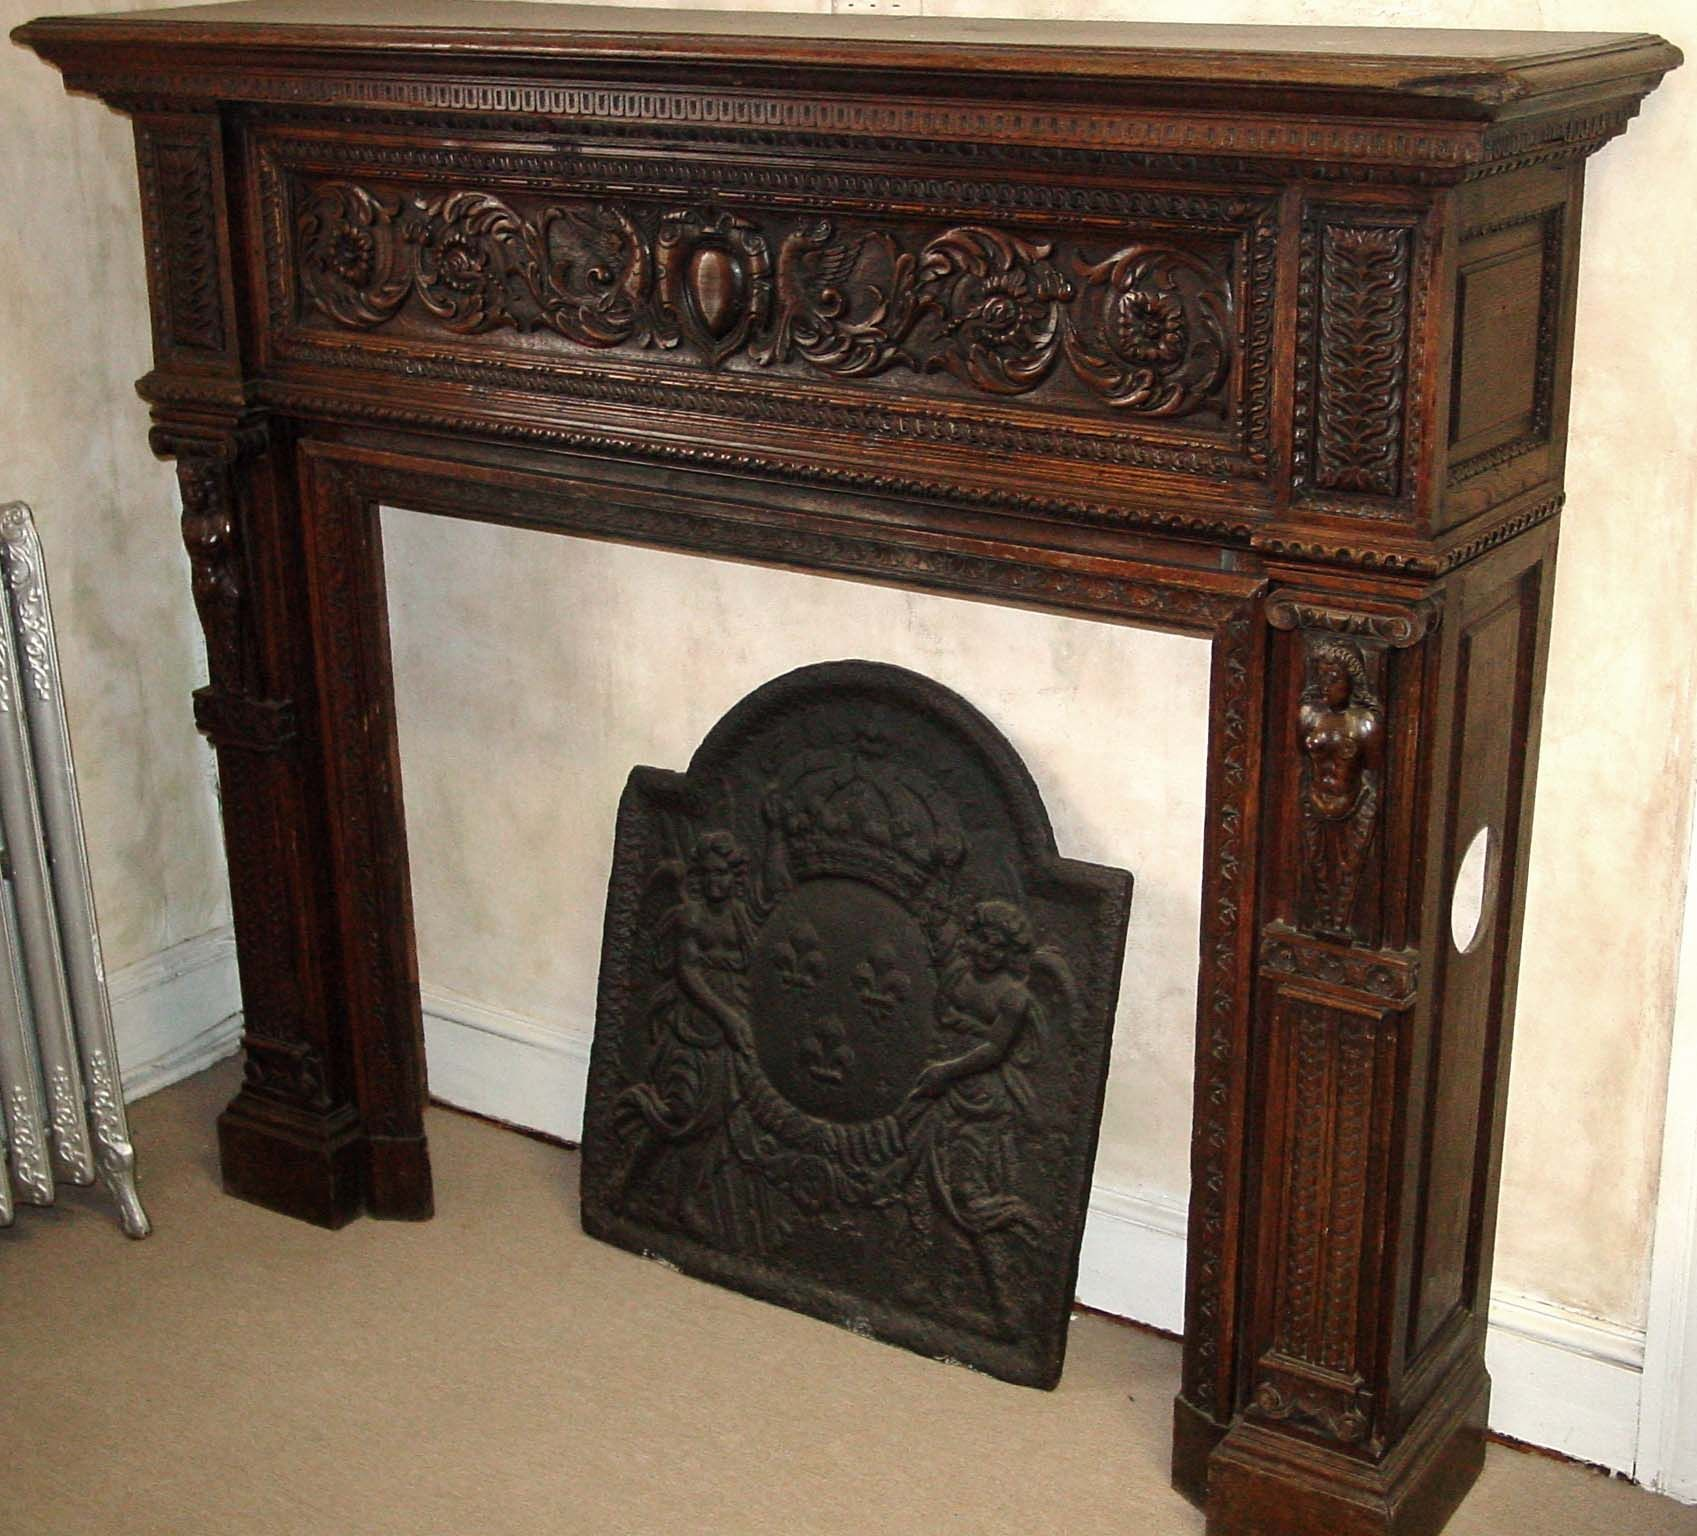 hand-carved wood fireplace mantel | Fireplace | Pinterest | Antique fireplace mantels